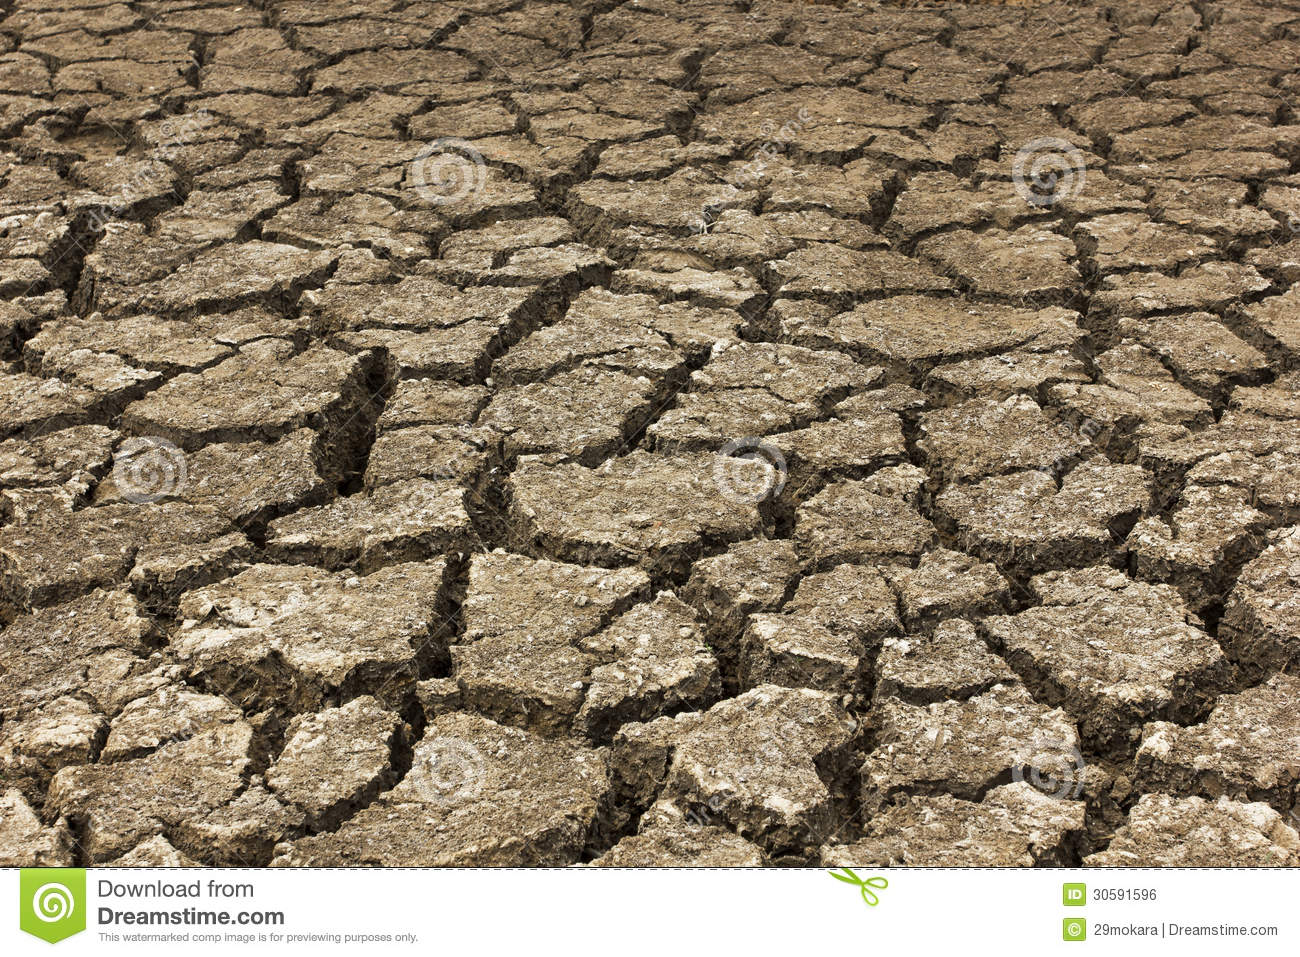 Dry Soil Arid On A Summer Season Stock Photo - Image: 30591596